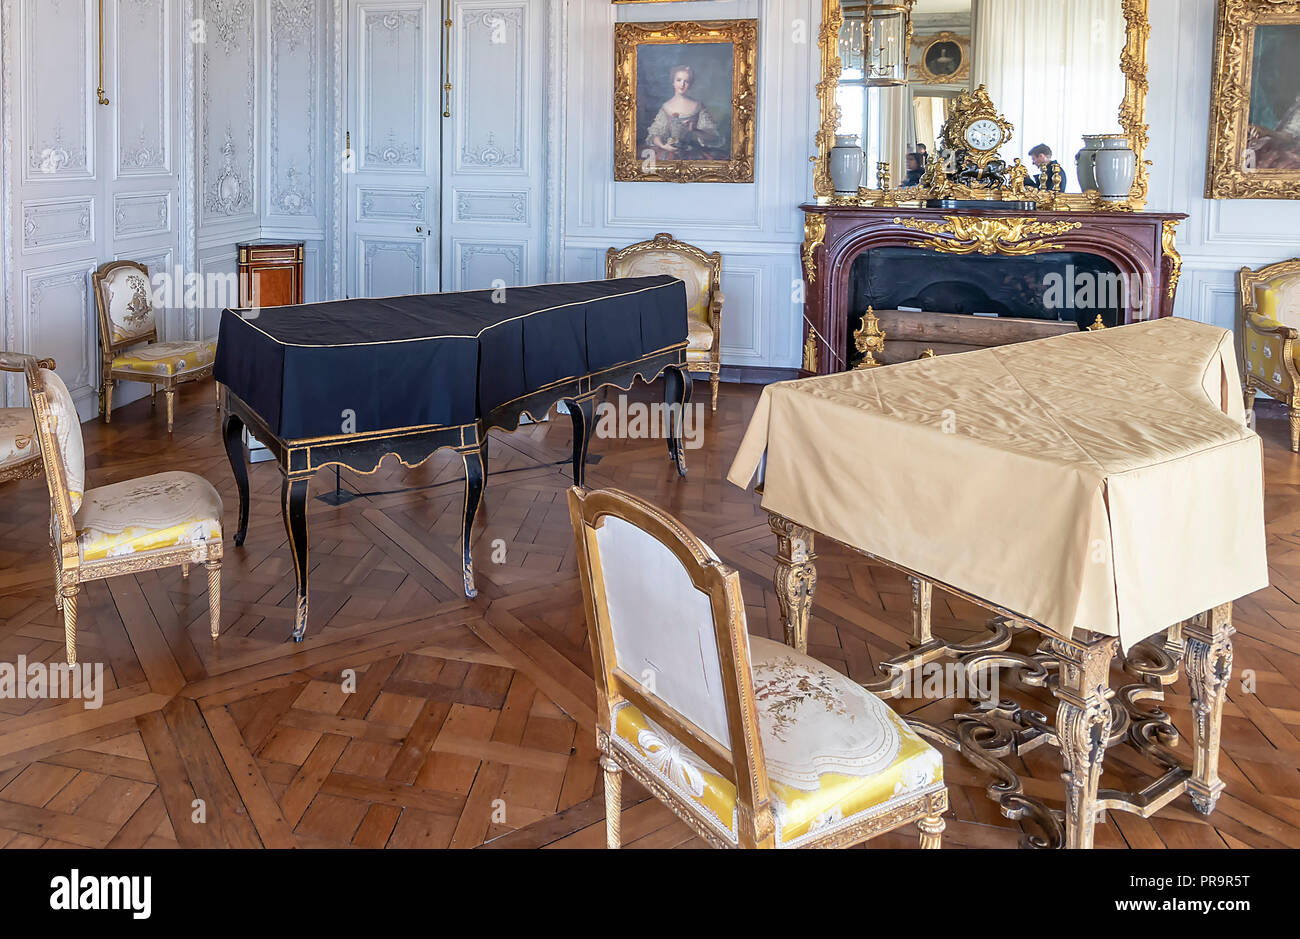 Music Room French Art Palace Stock Photos & Music Room French Art ...